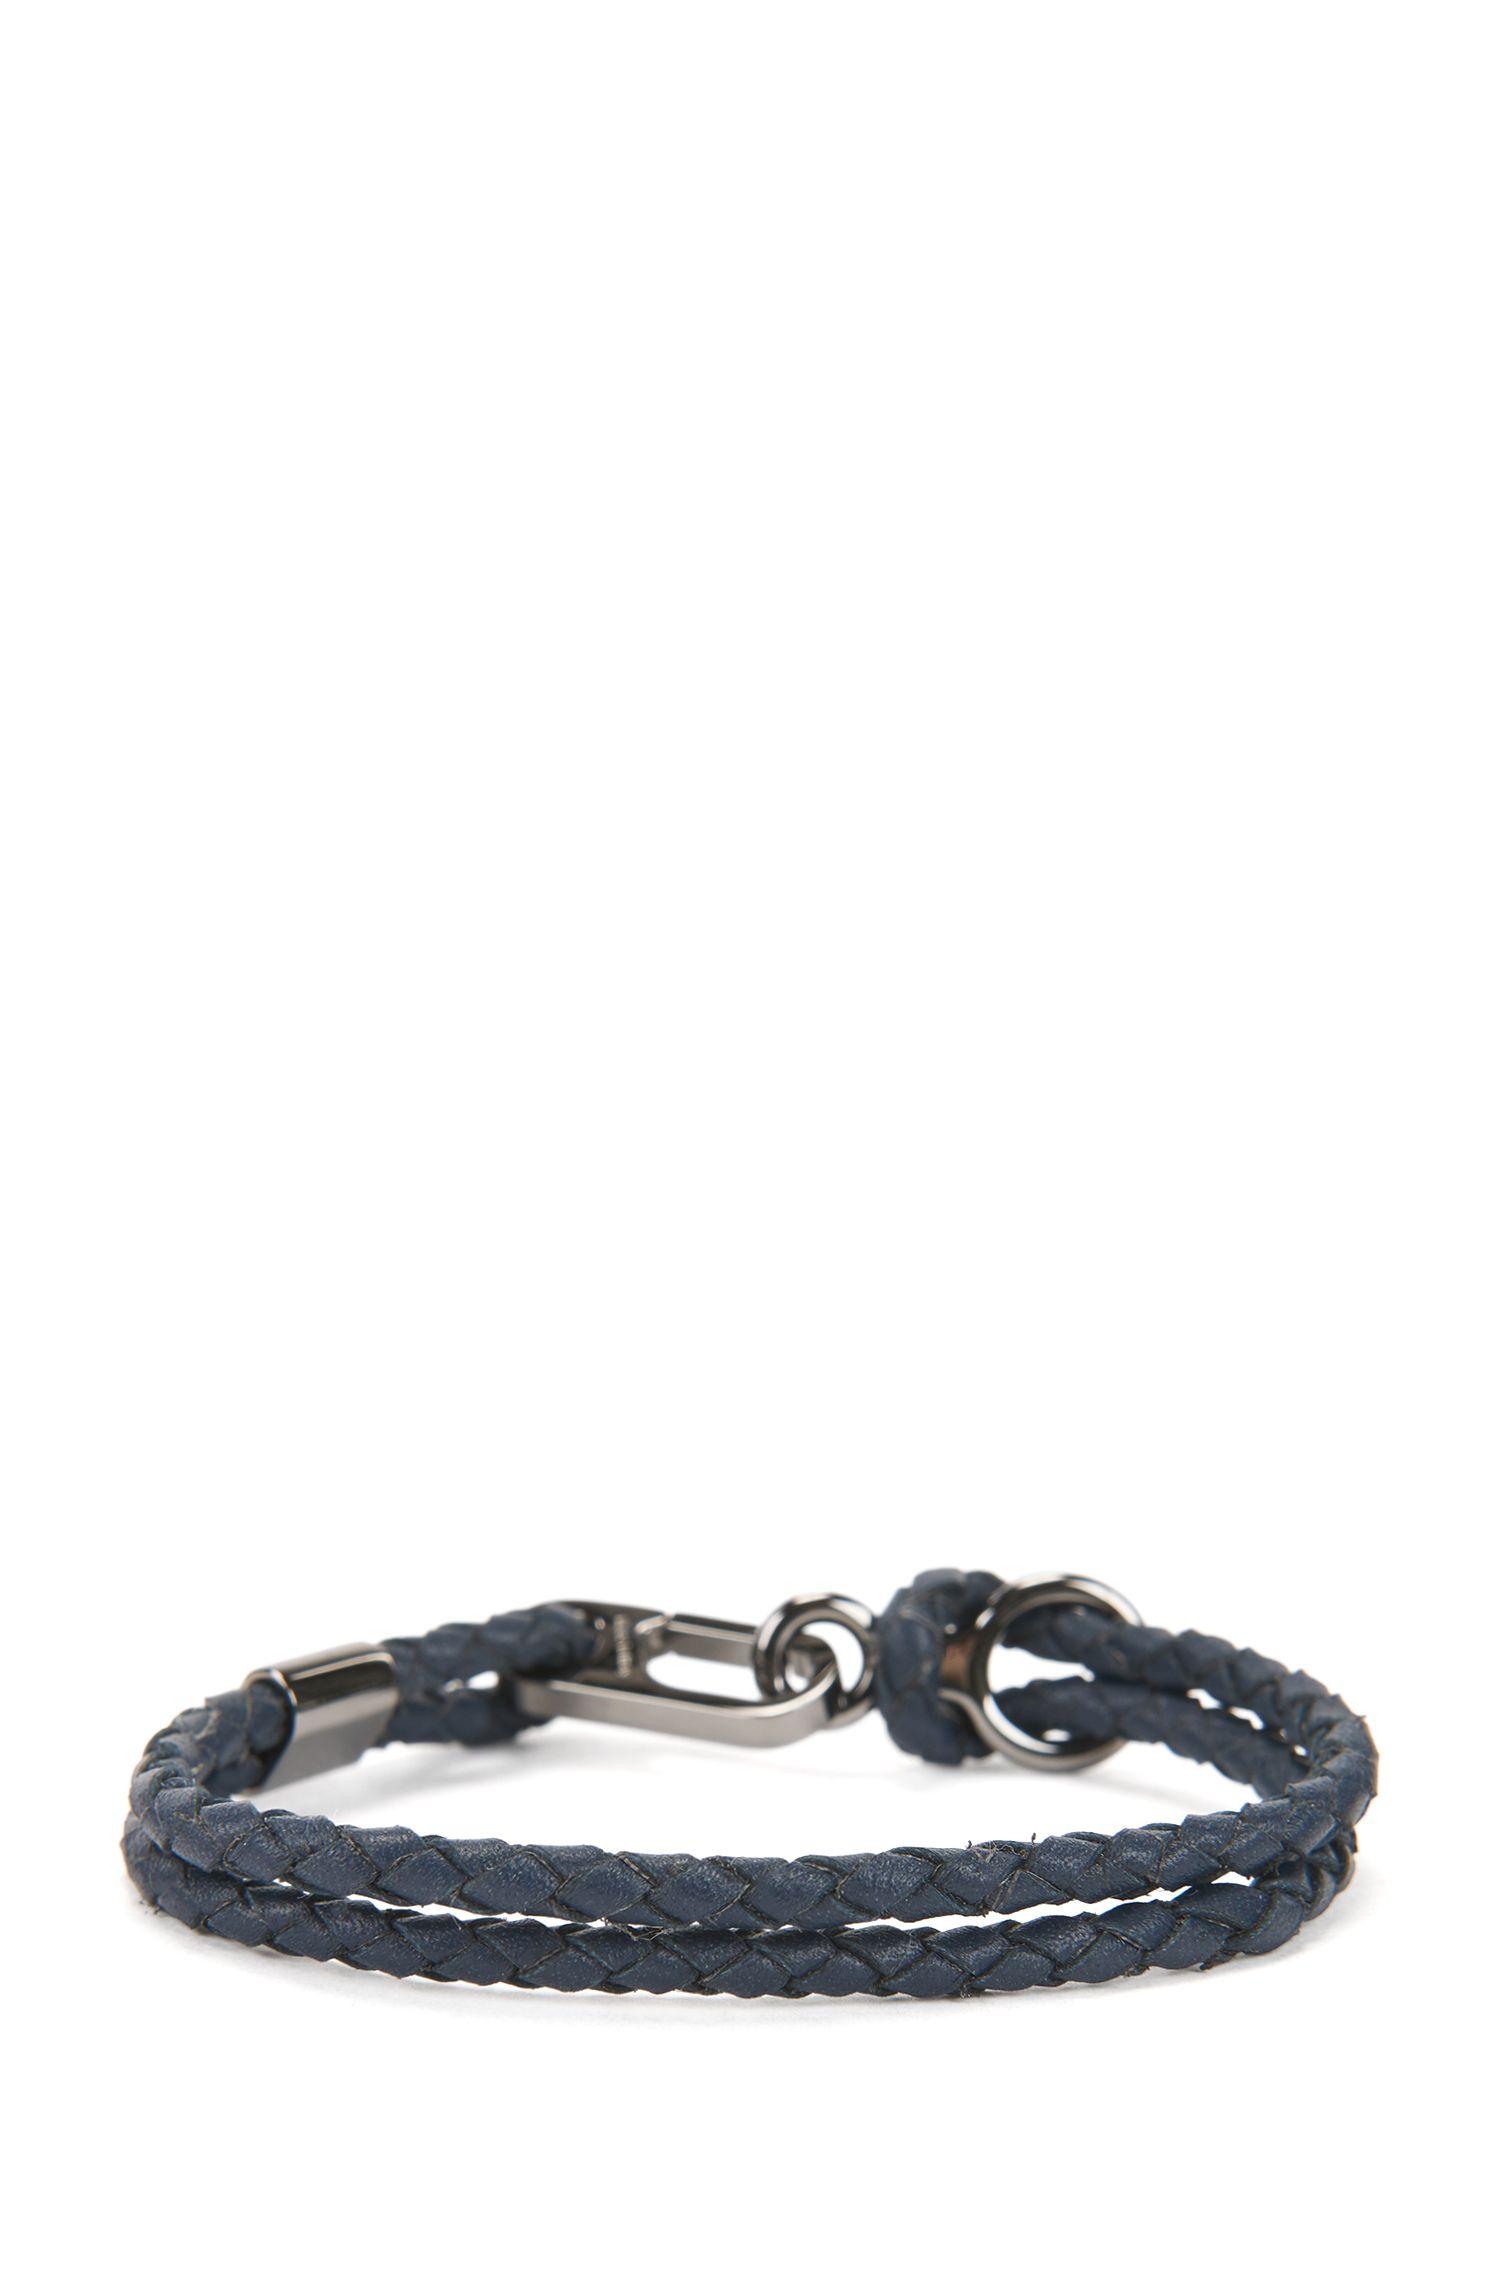 Double braided calf-leather bracelet with carabiner closure